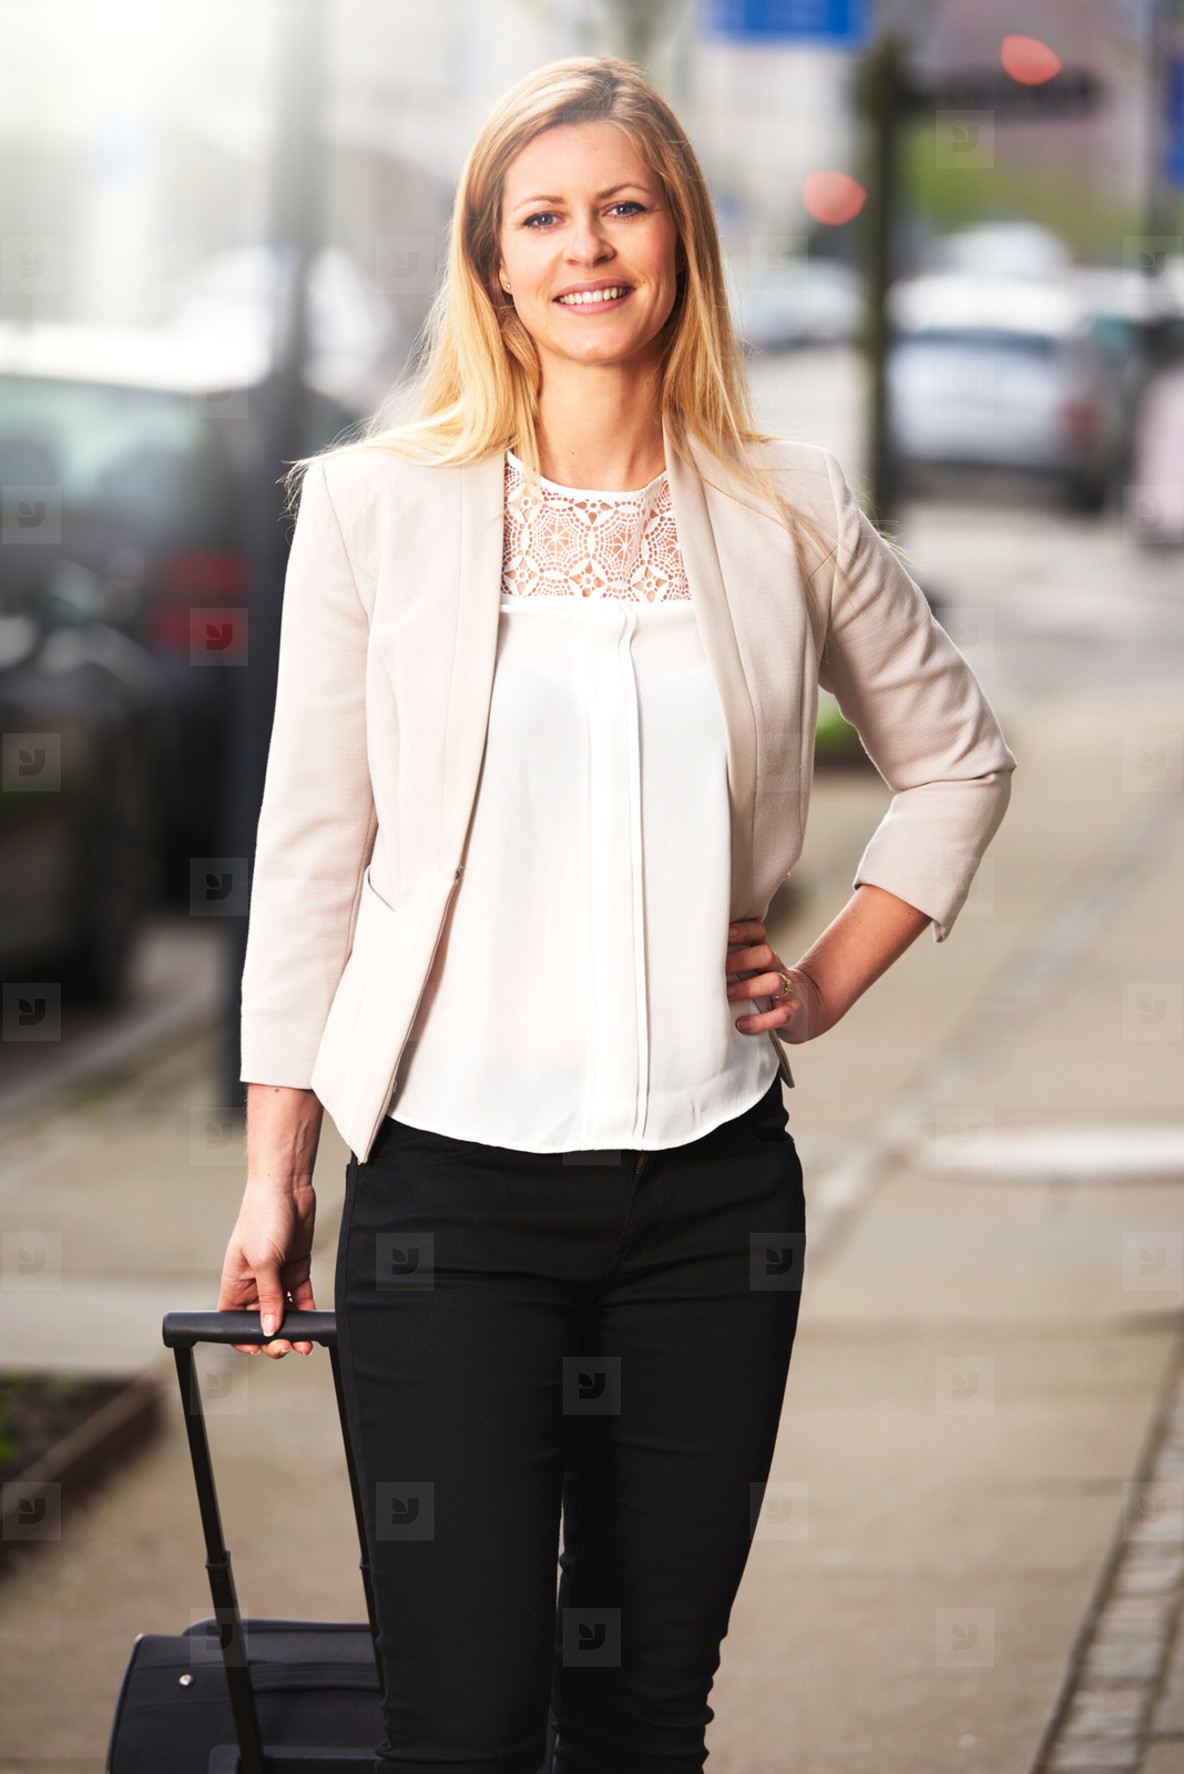 Professional woman posing for picture on sidewalk